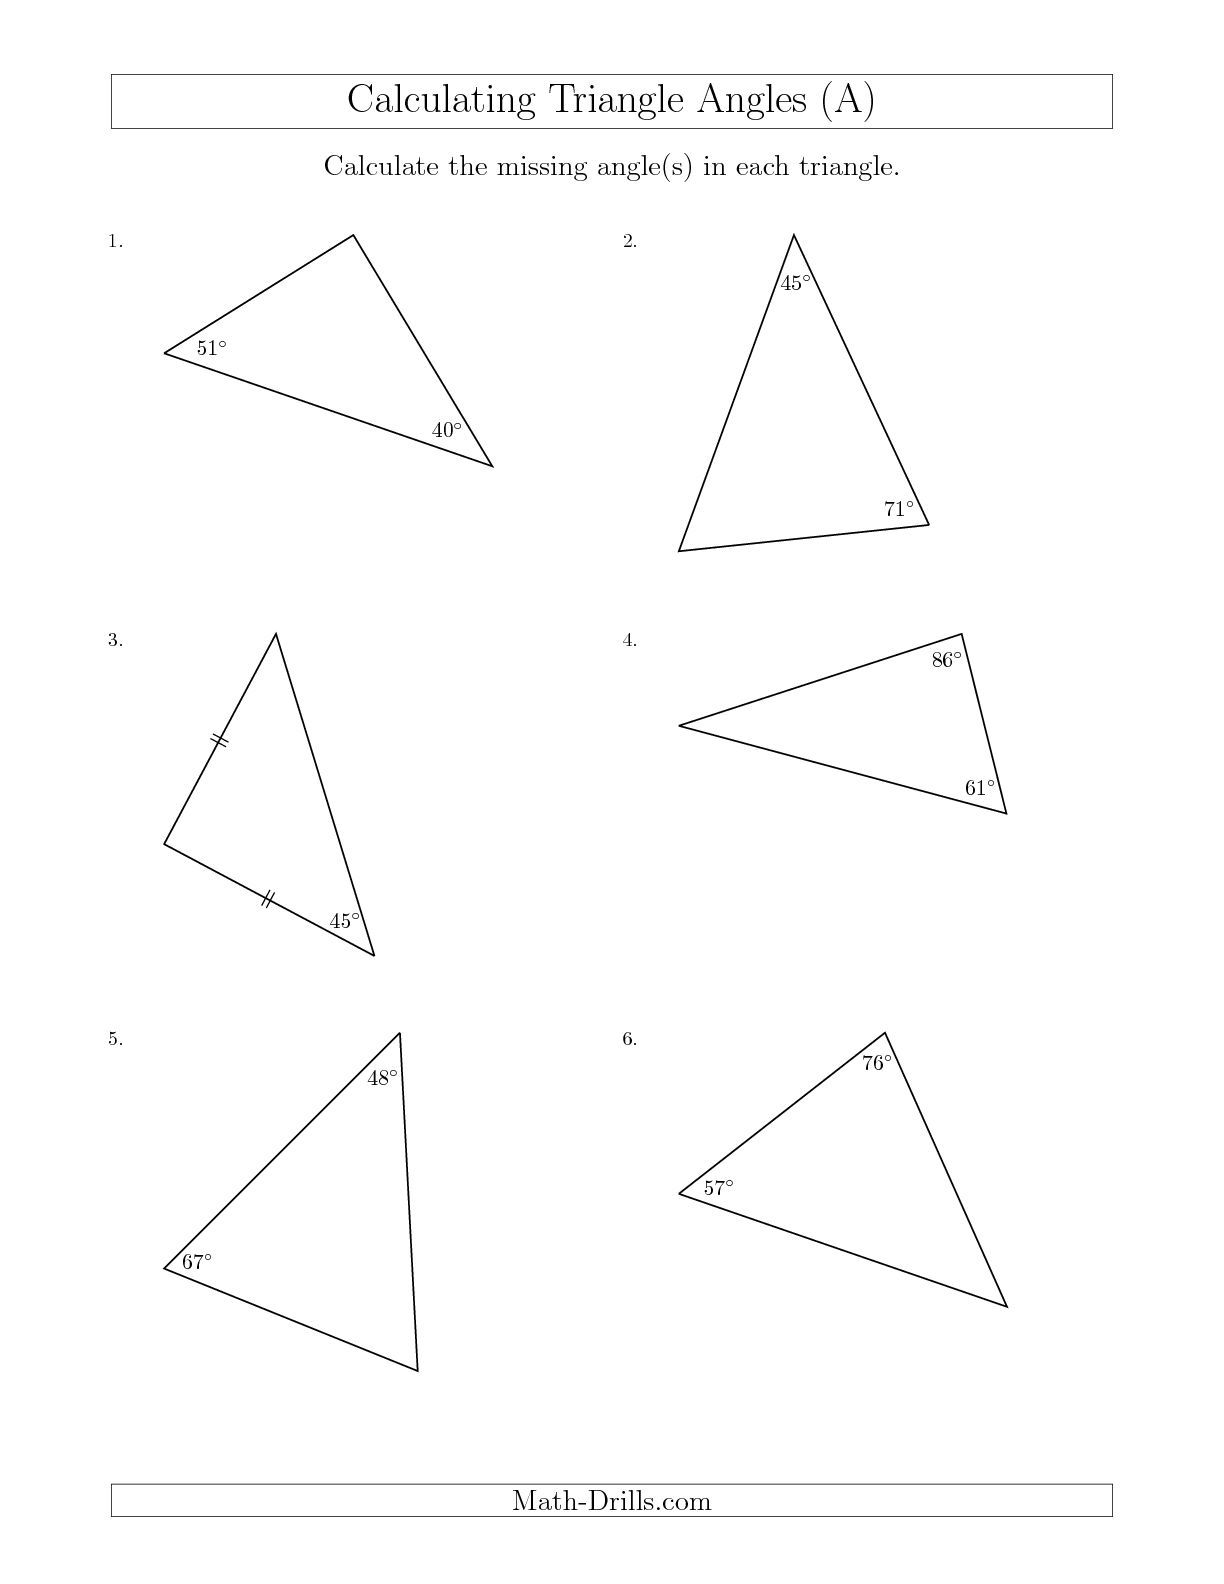 Worksheets Interior Angles Of A Triangle Worksheet new calculating angles of a triangle given the other math worksheet